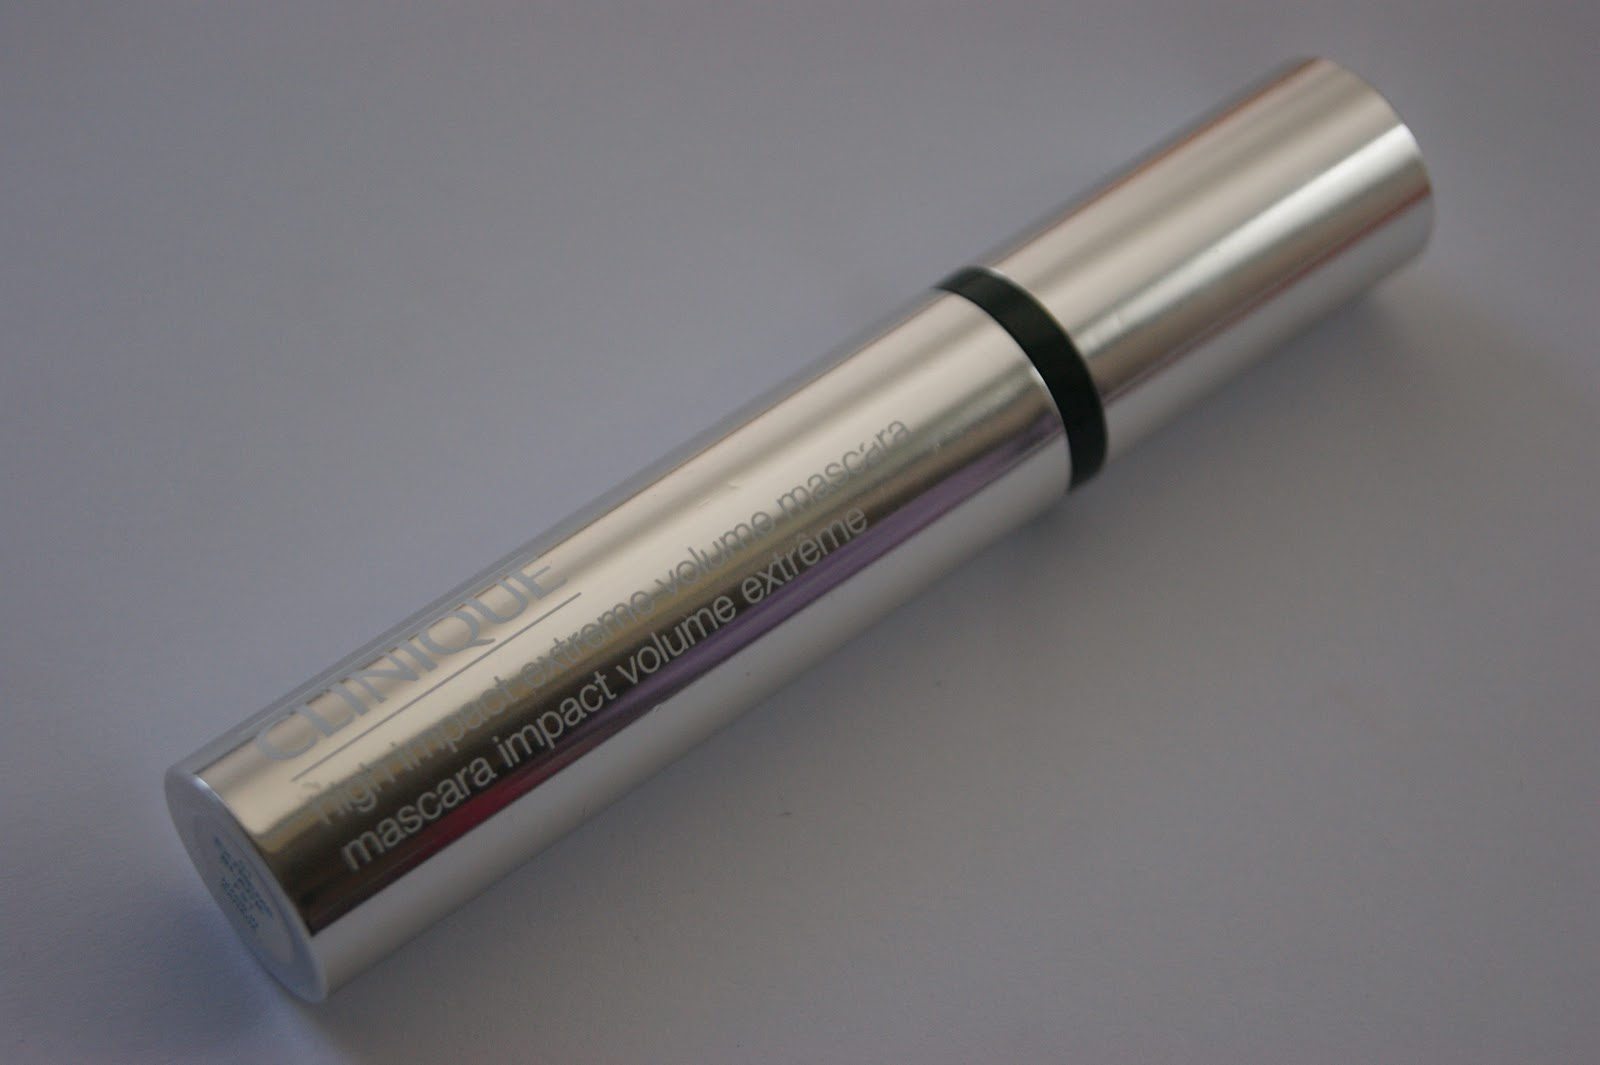 3f702e616d1 Clinique High Impact Extreme Volume Mascara - Review | The Sunday Girl